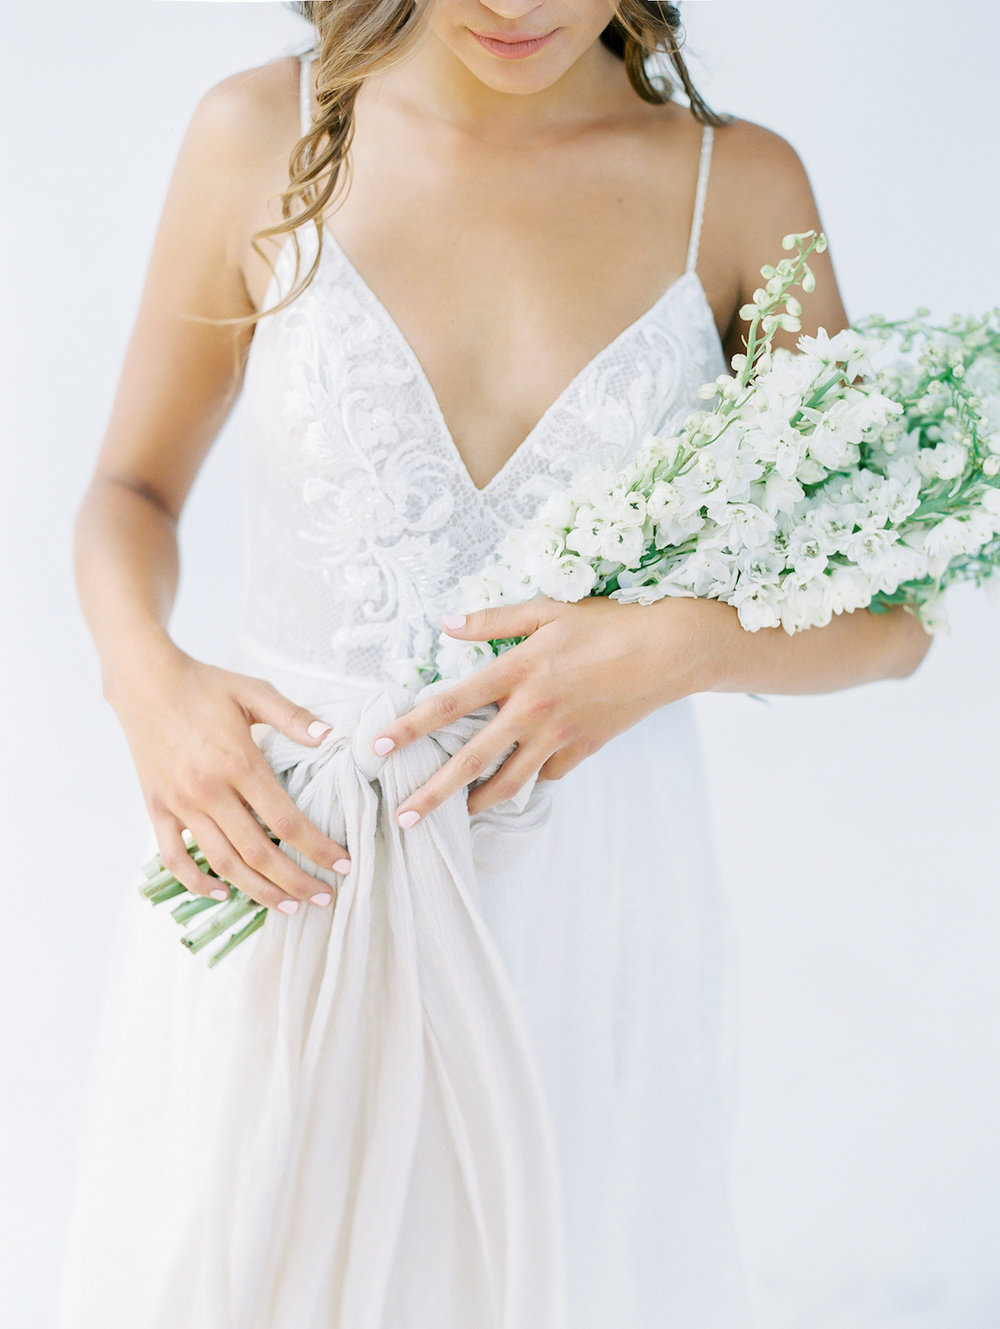 Delphinium bridal bouquet | Studio 710 | Compass Floral | Wedding Florist in San Diego and Southern California | Dear Lovers Photography